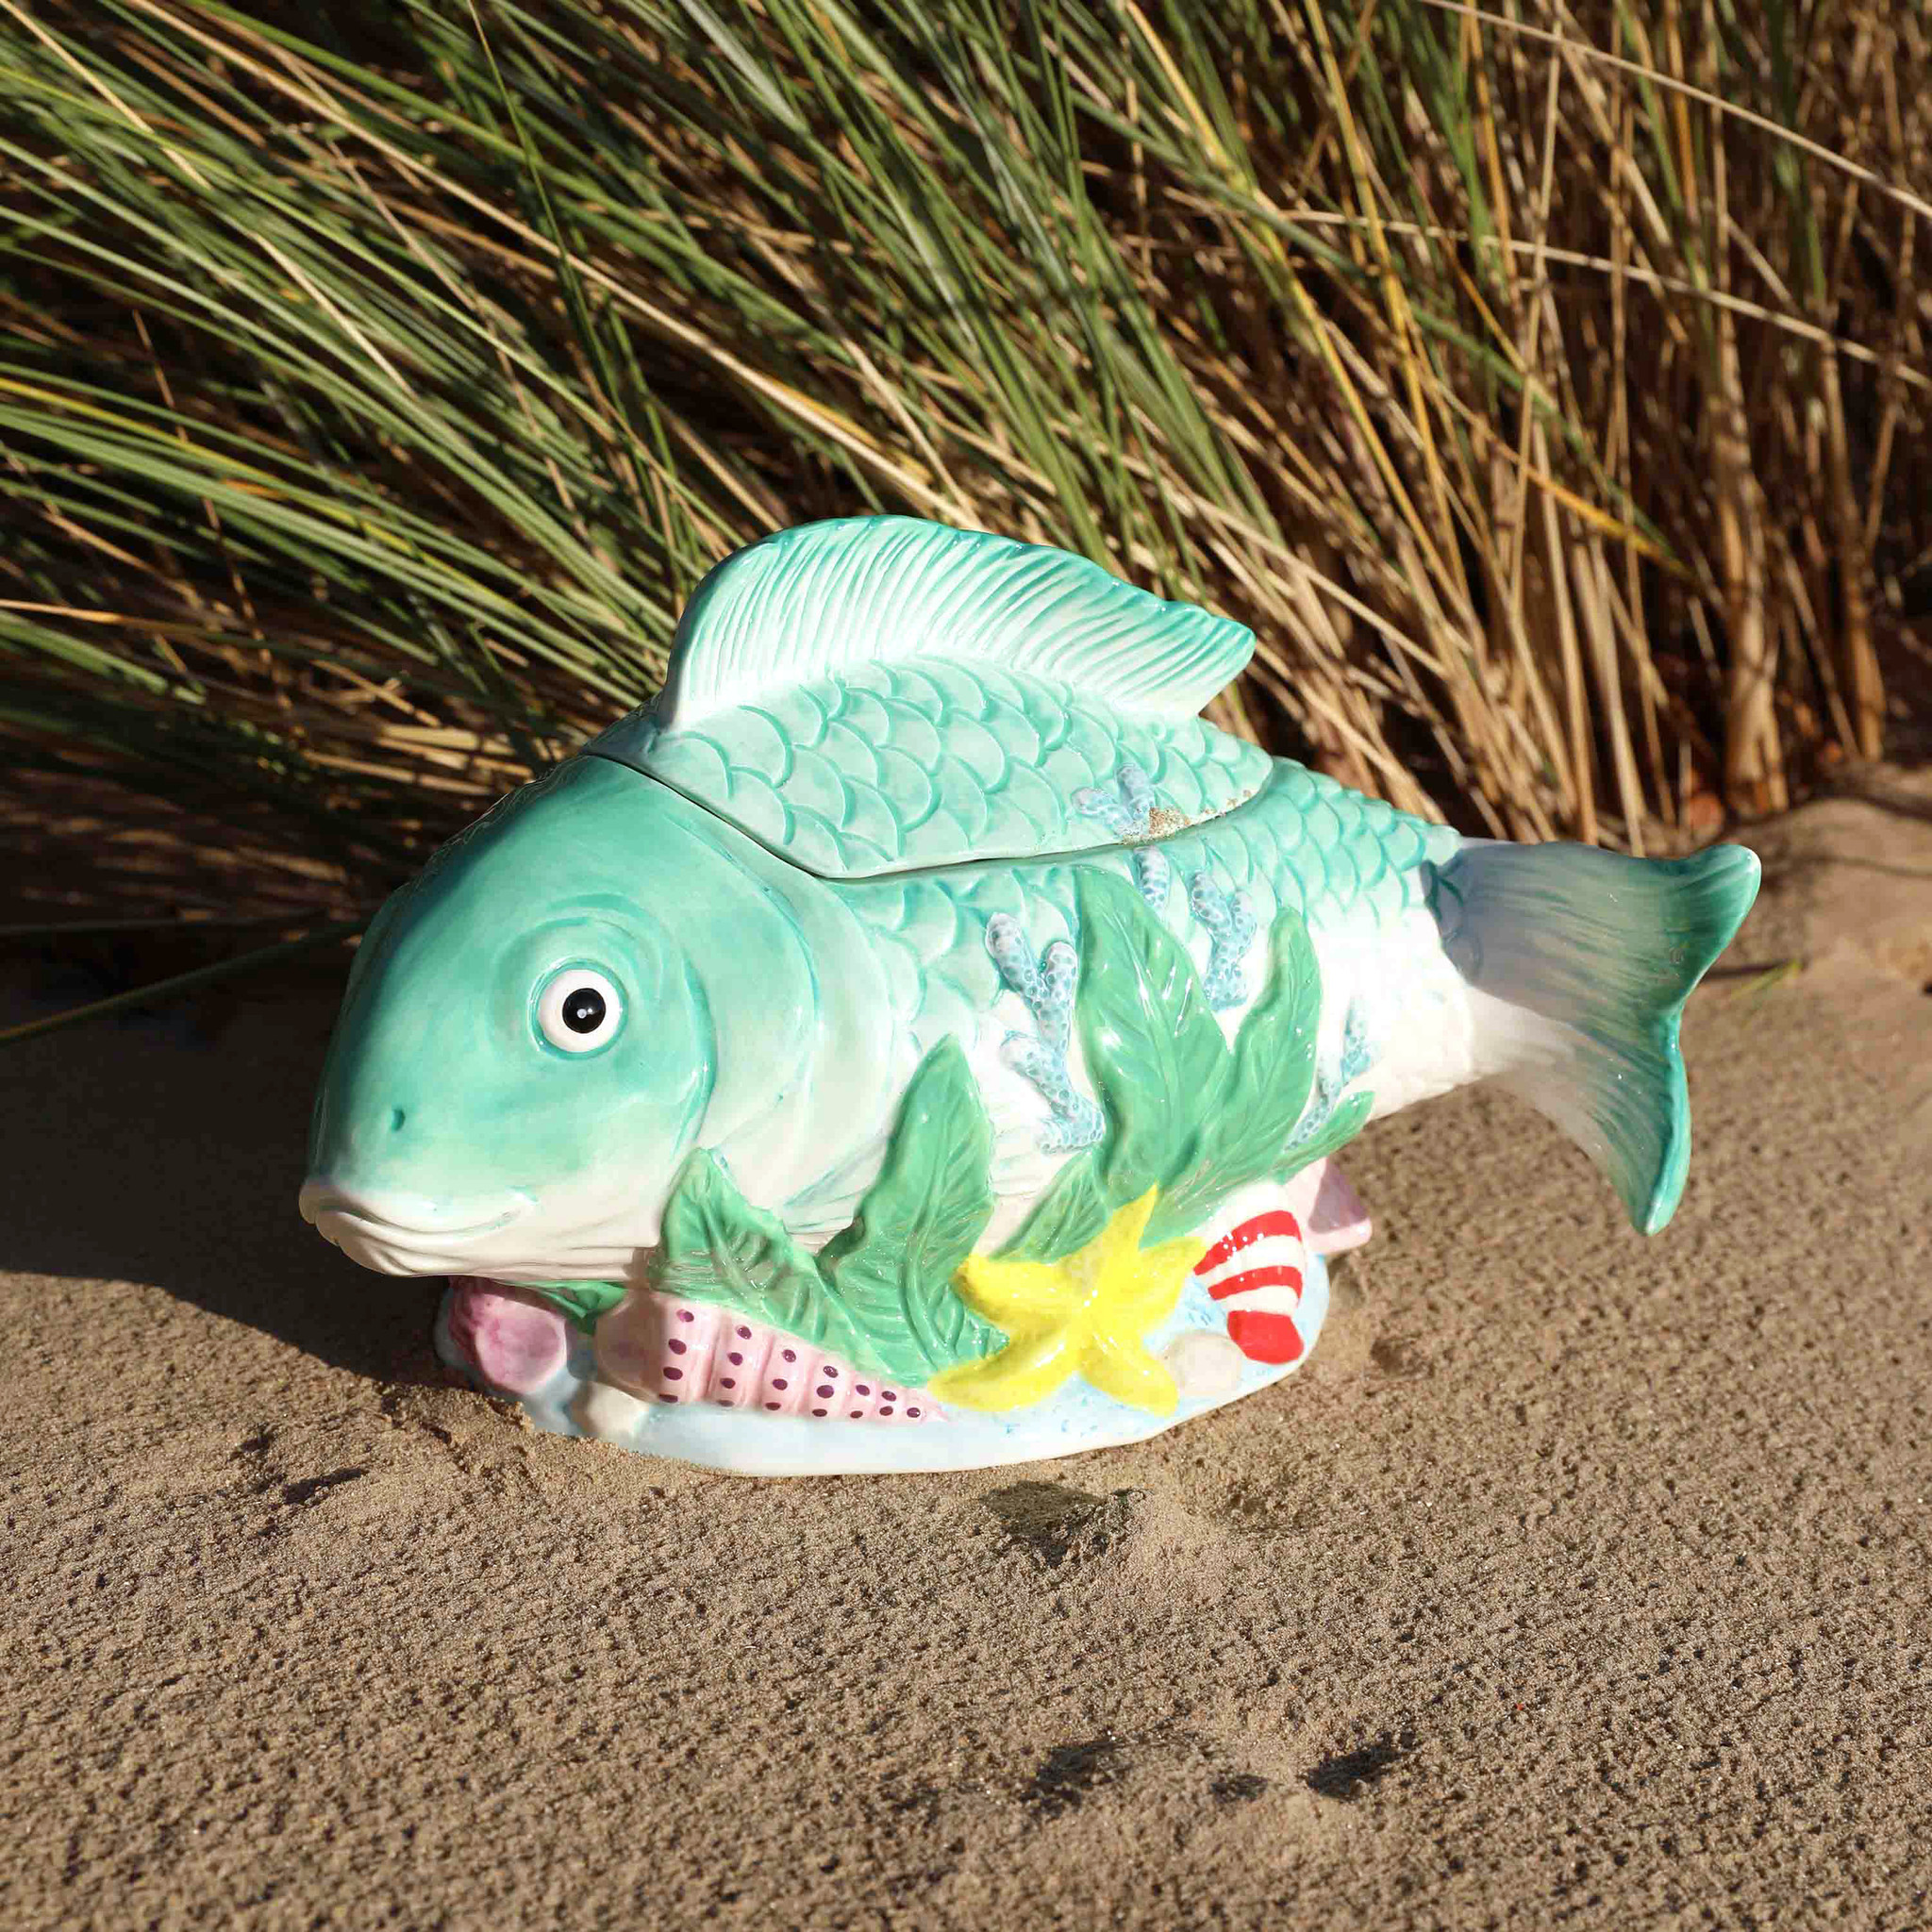 Ceramic fish container with lid